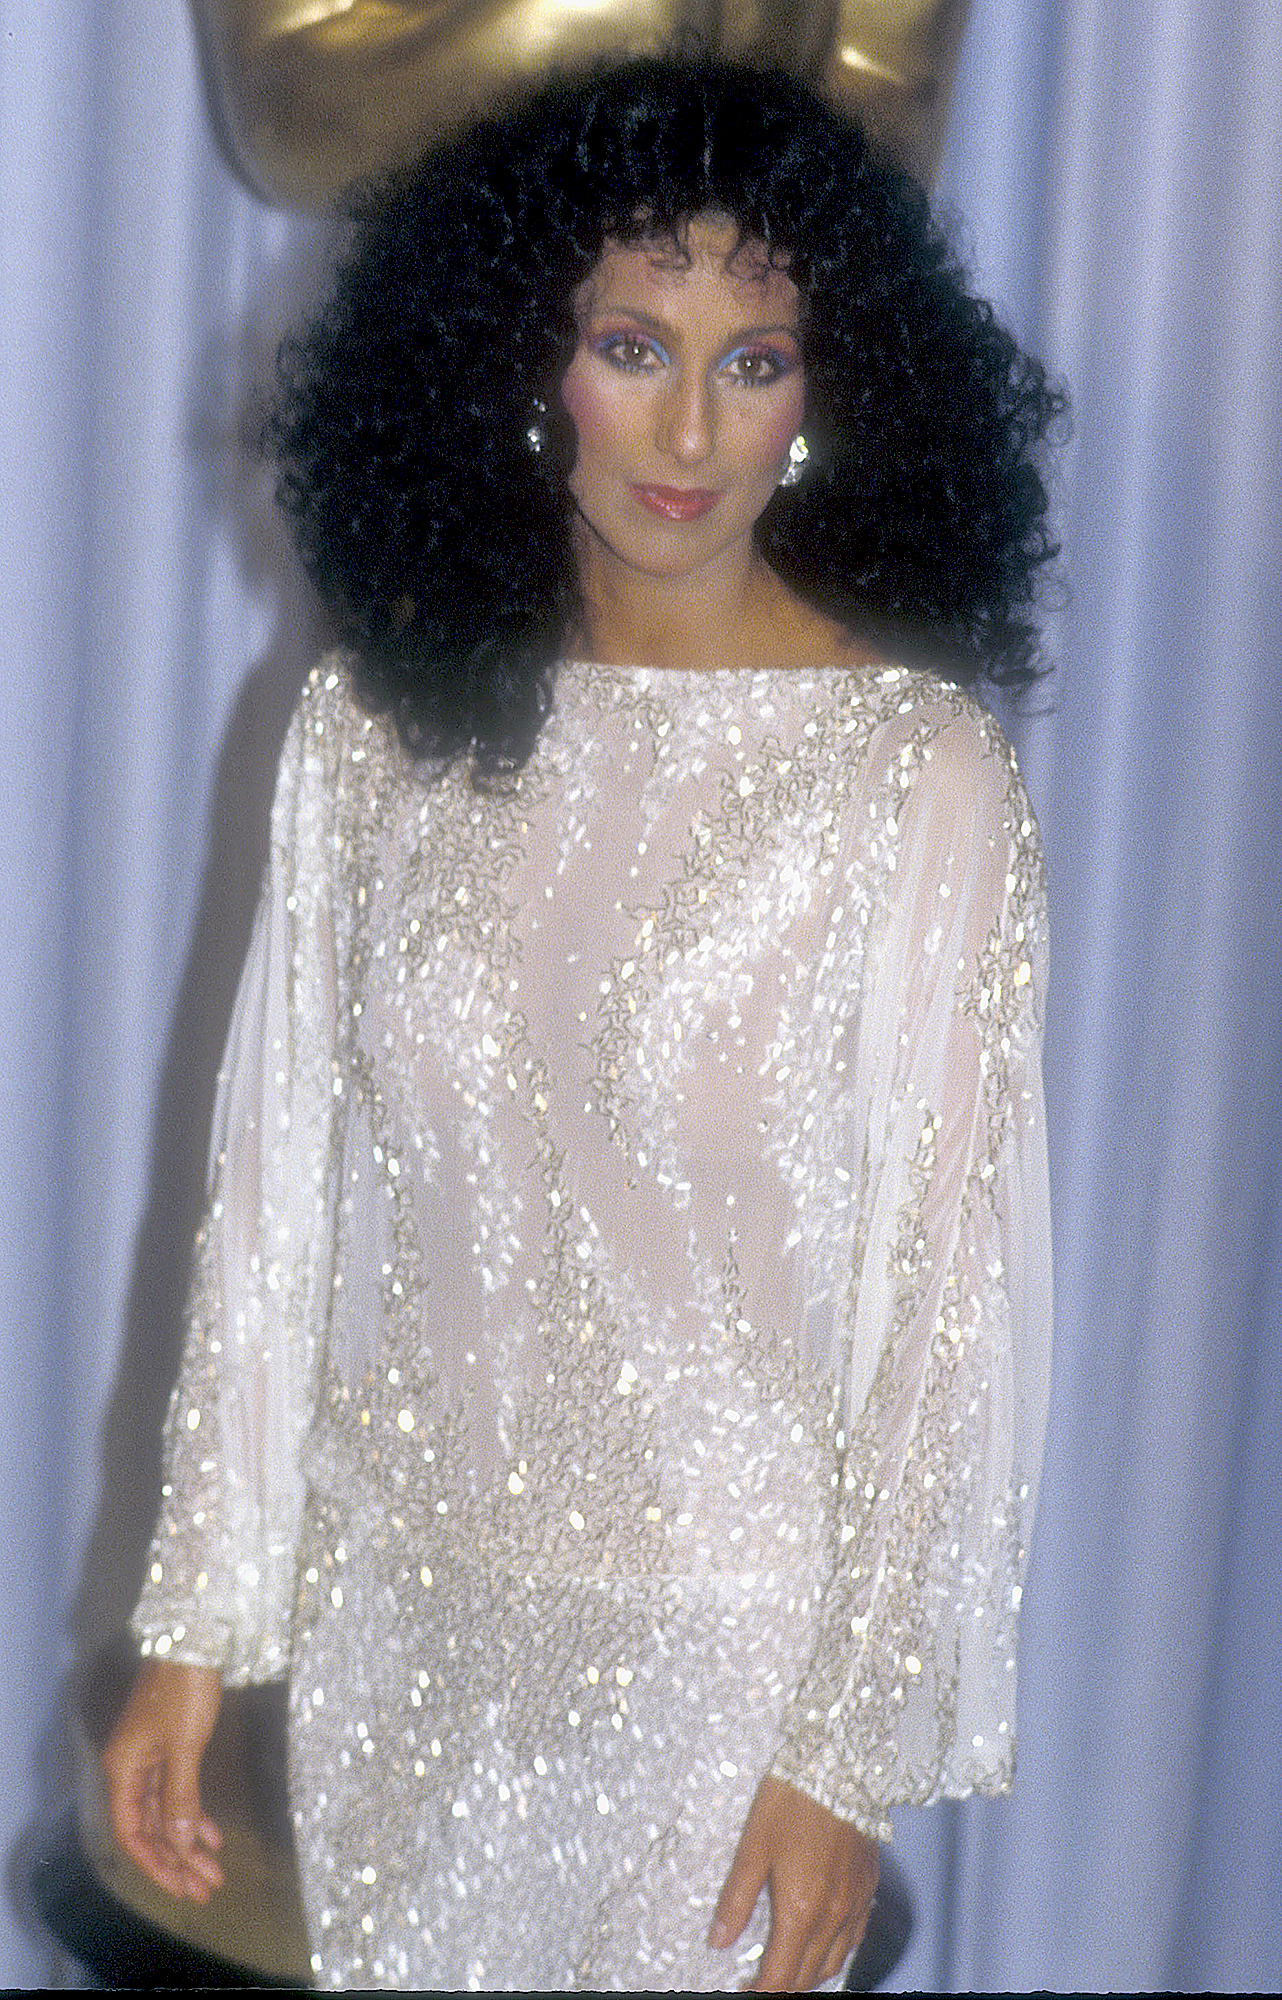 1983-Cher - As a presenter at the 55th annual Academy Awards, the award-winning artist wore yet another Mackie original that might not have bared her midriff but the long-sleeve white gown still showed skin with its see-through fabric.